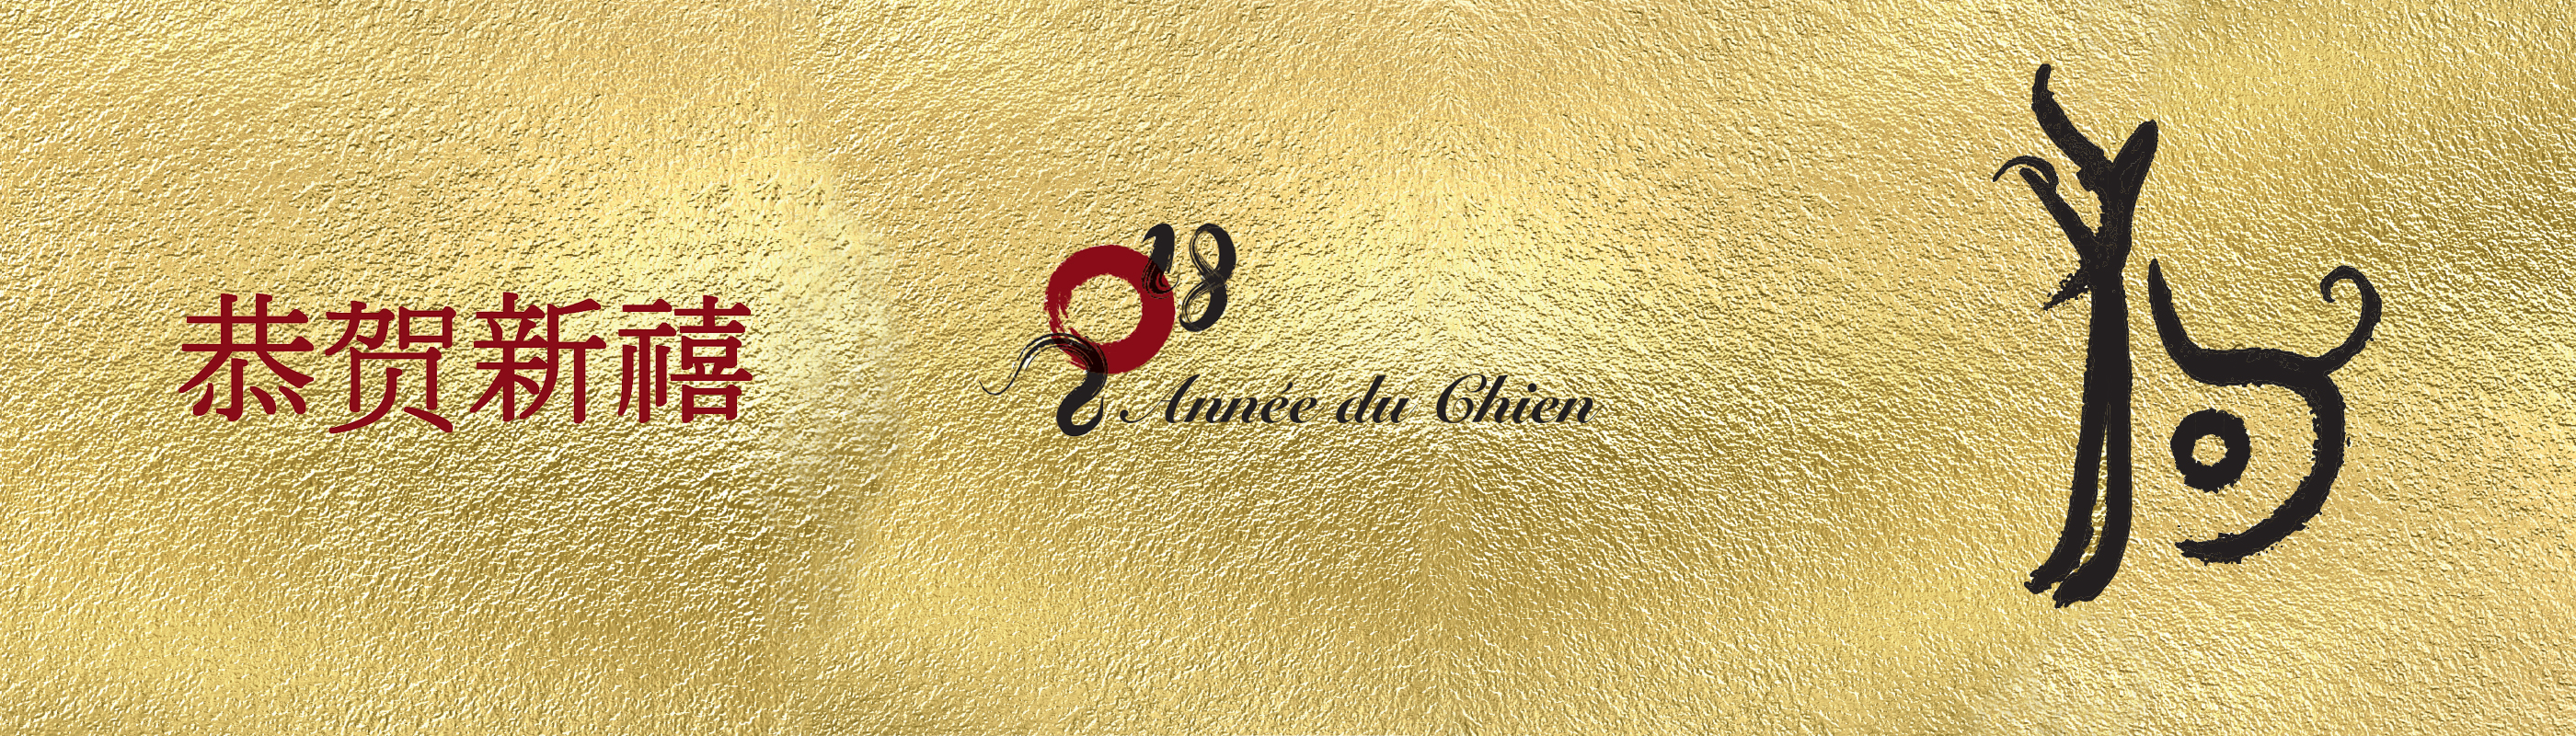 Chinese New Year 2018 gift guide, luxury gifts to celebrate the year ...